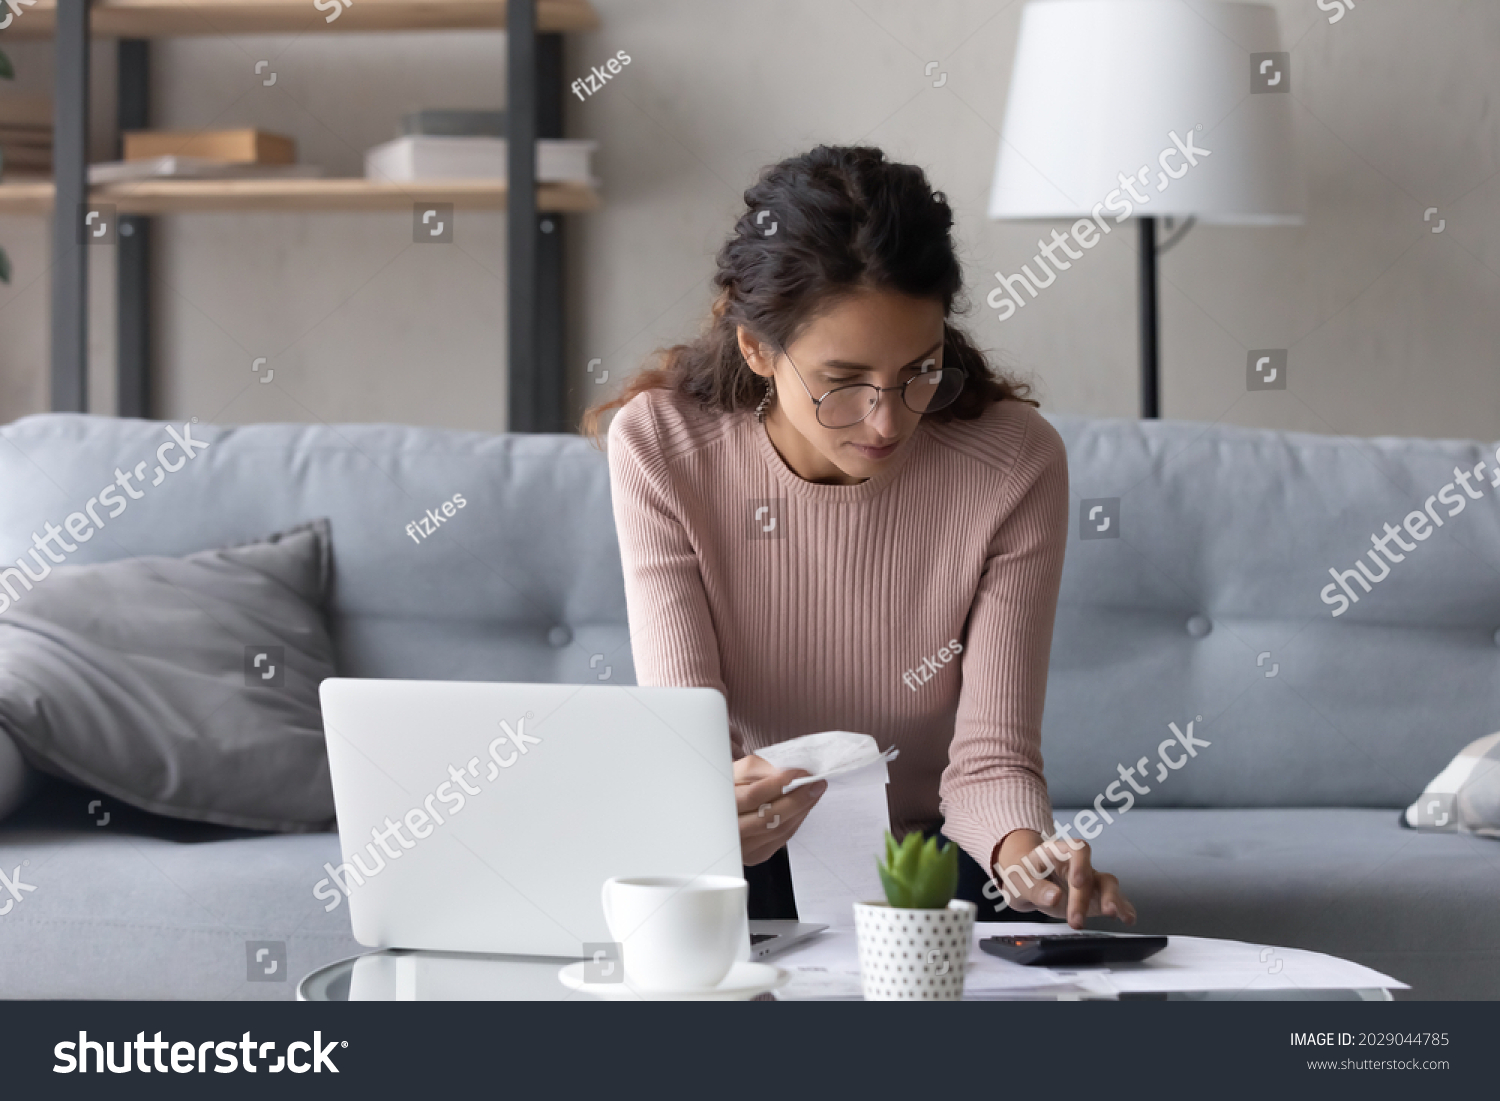 Serious female in glasses paying utility bills, taxes, rental fees use online services e-bank app on laptop. Young woman work from home sit on couch hold paper invoice calculate expenses, make report #2029044785